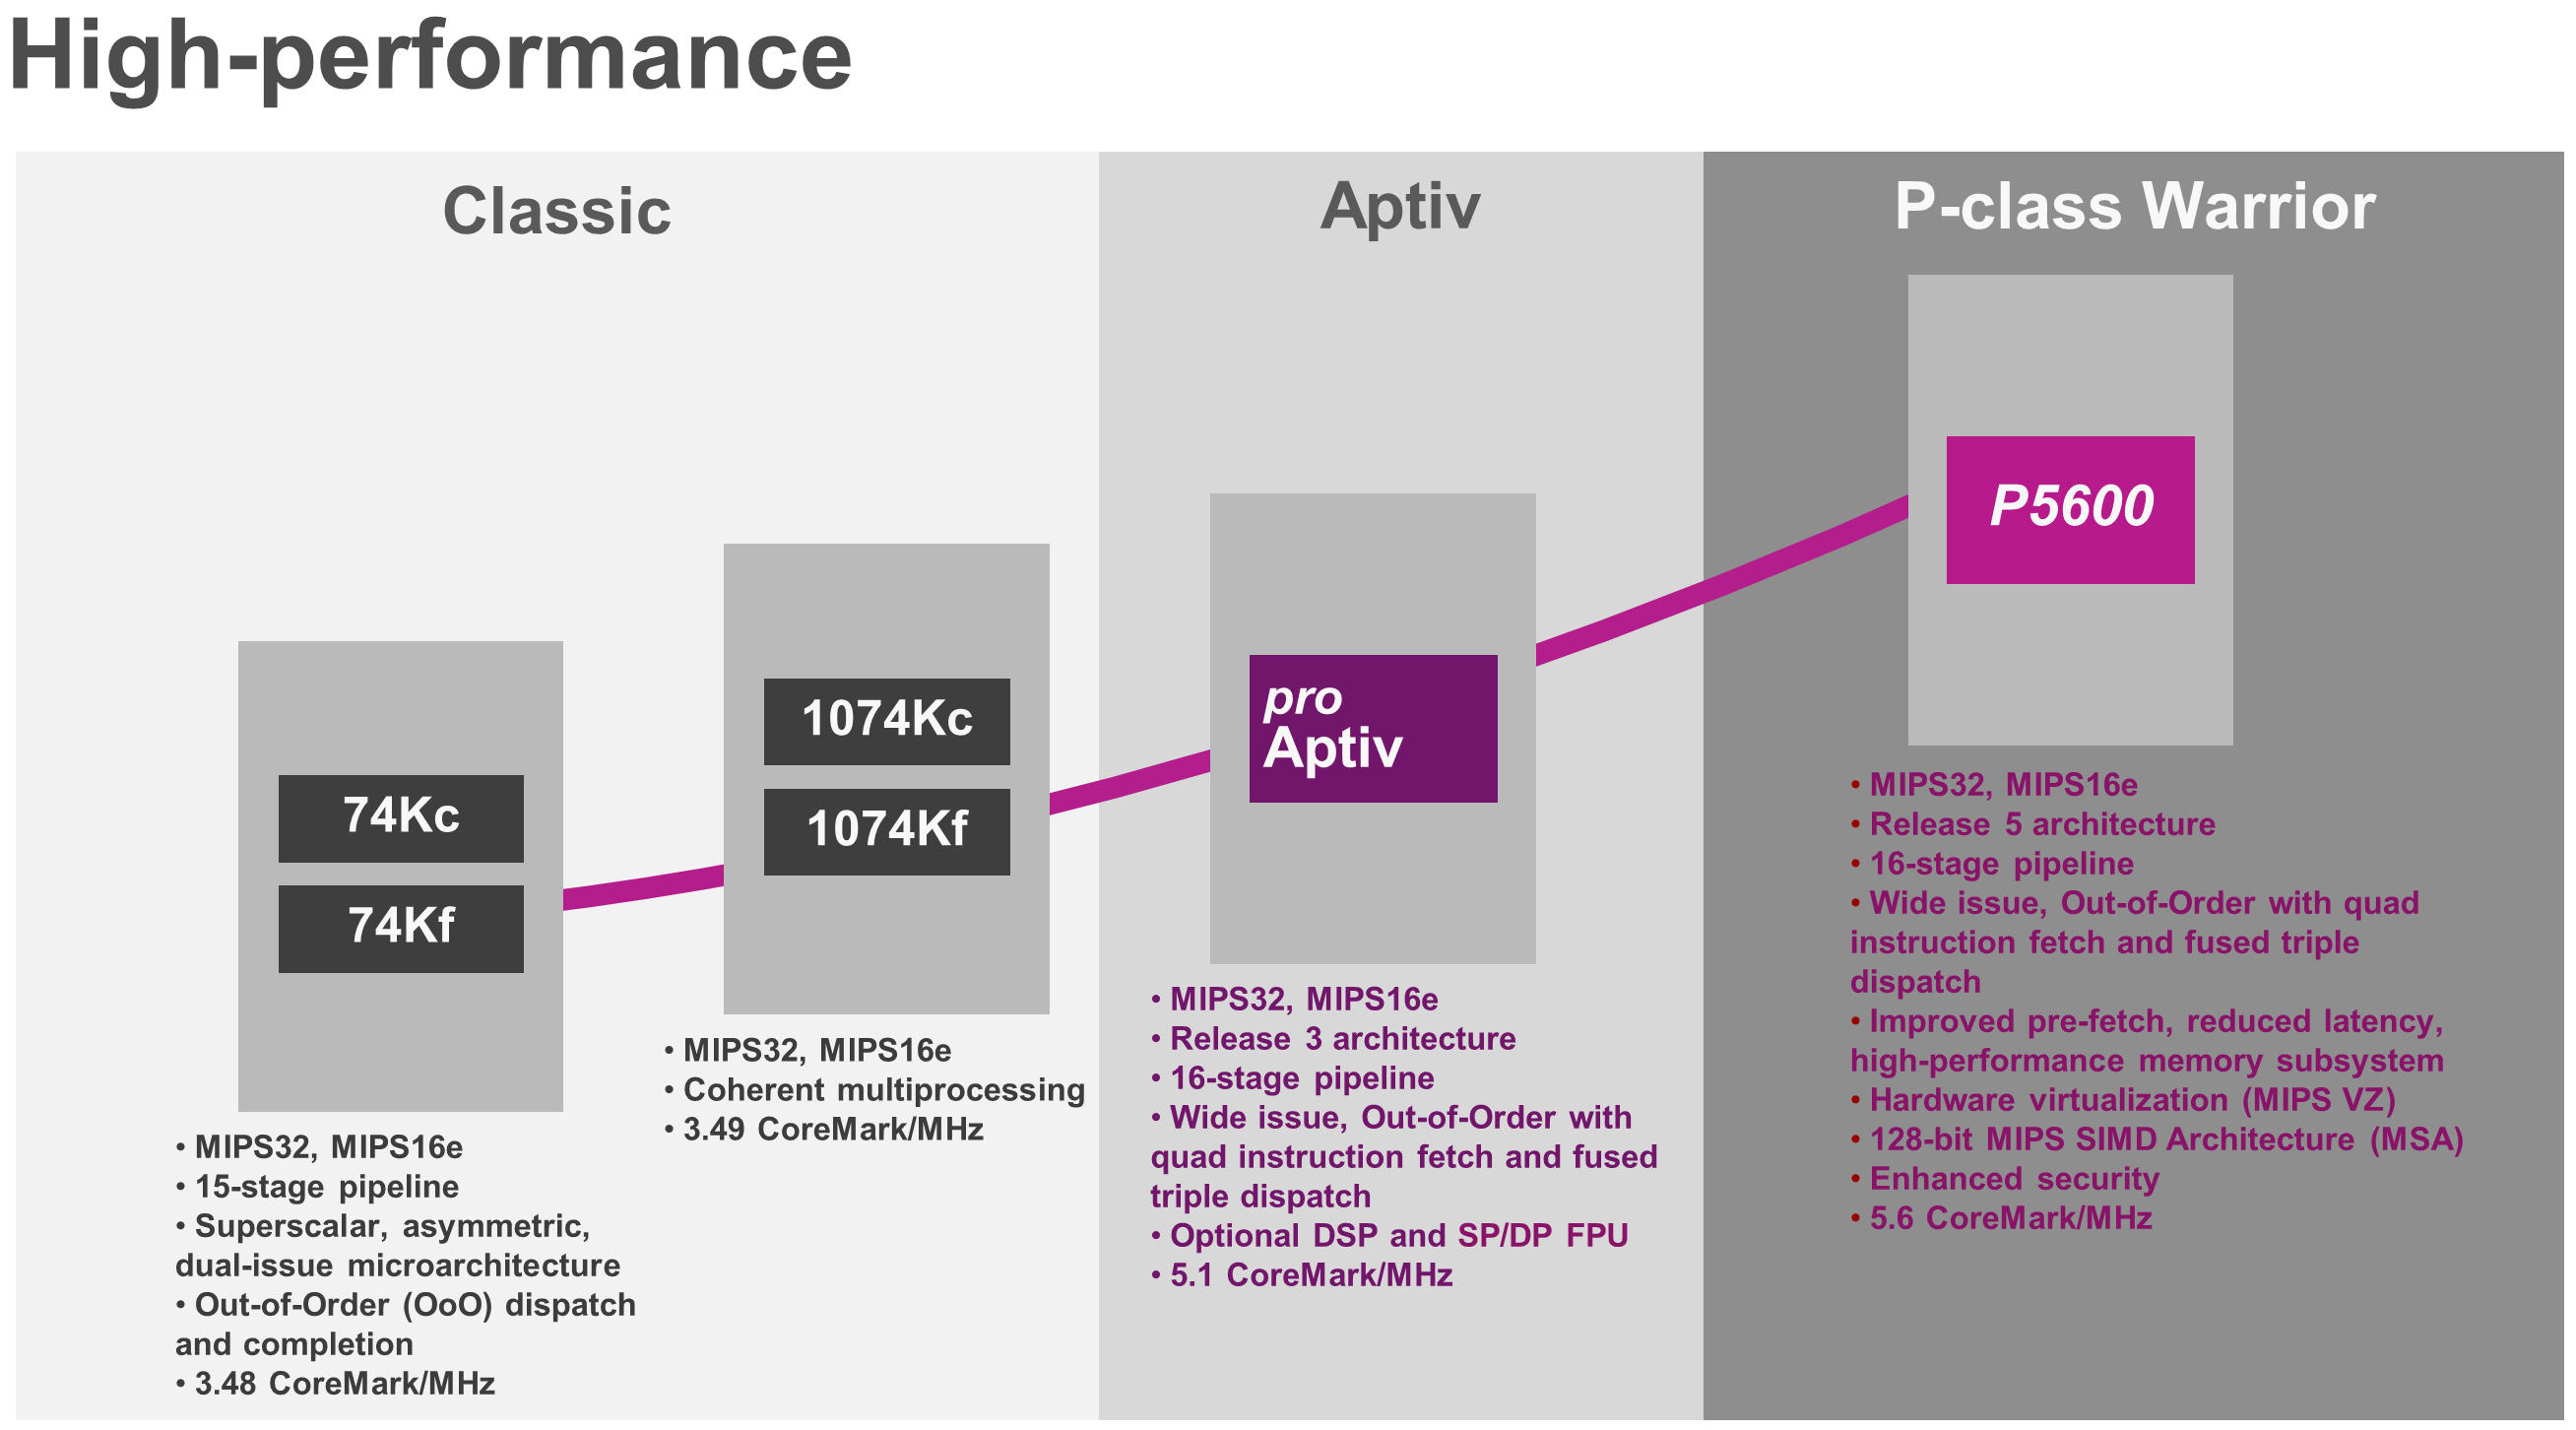 The evolution of MIPS CPUs - P-class